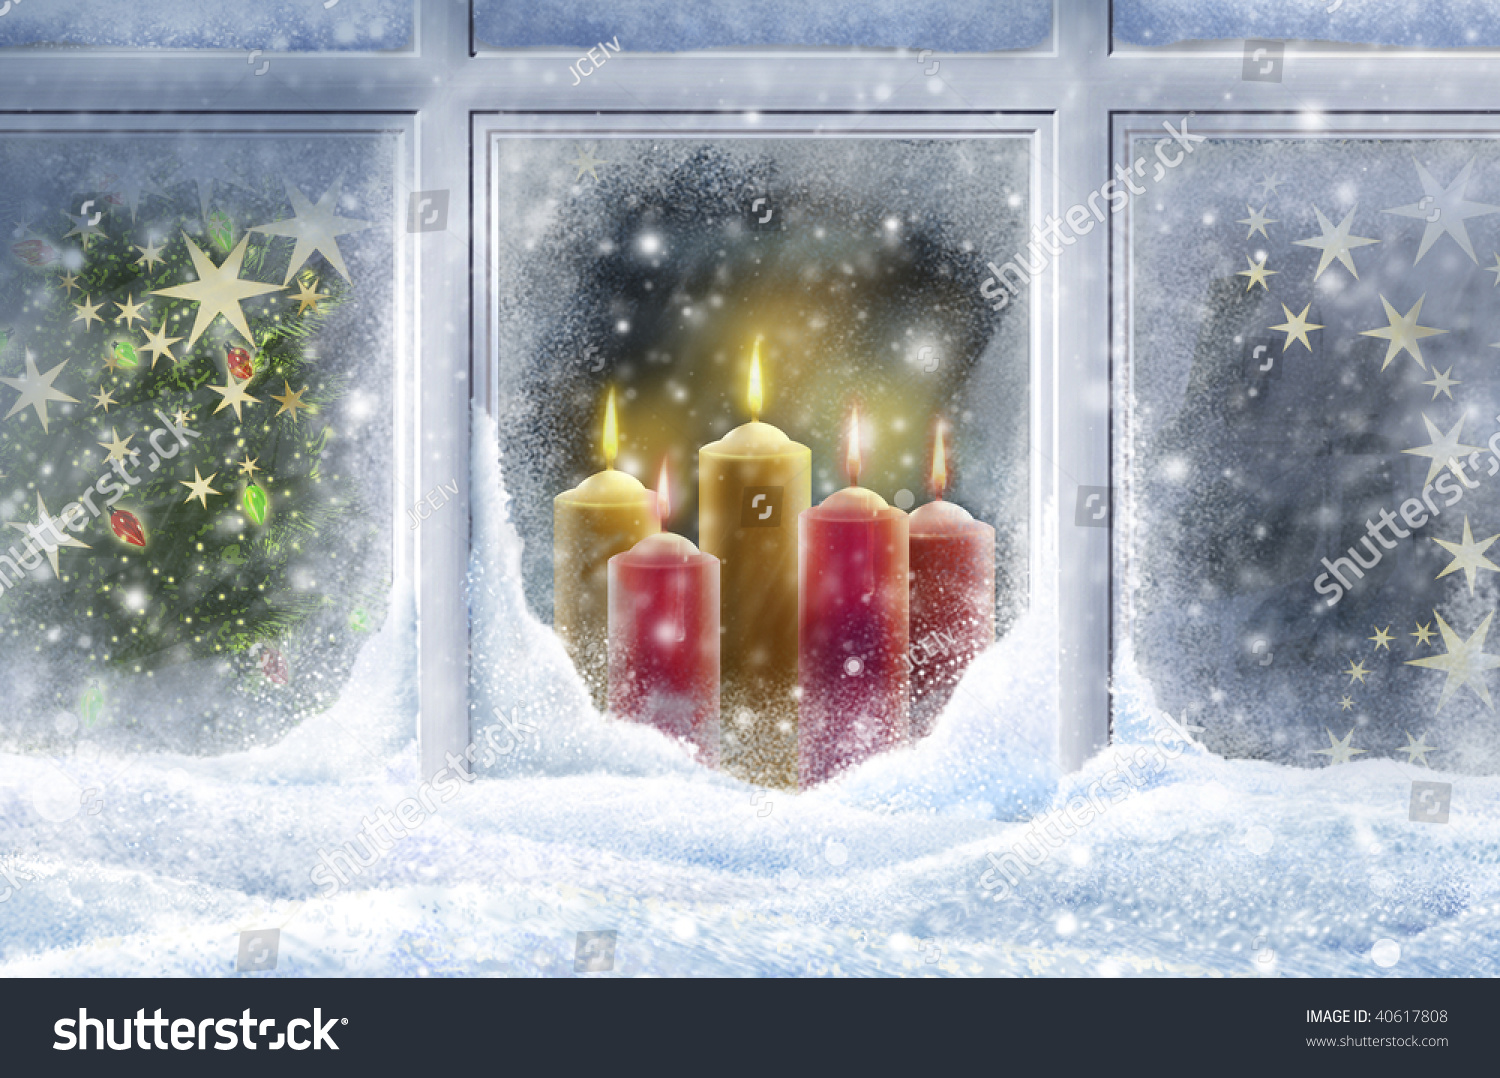 looking through snowy window candles stock illustration 40617808